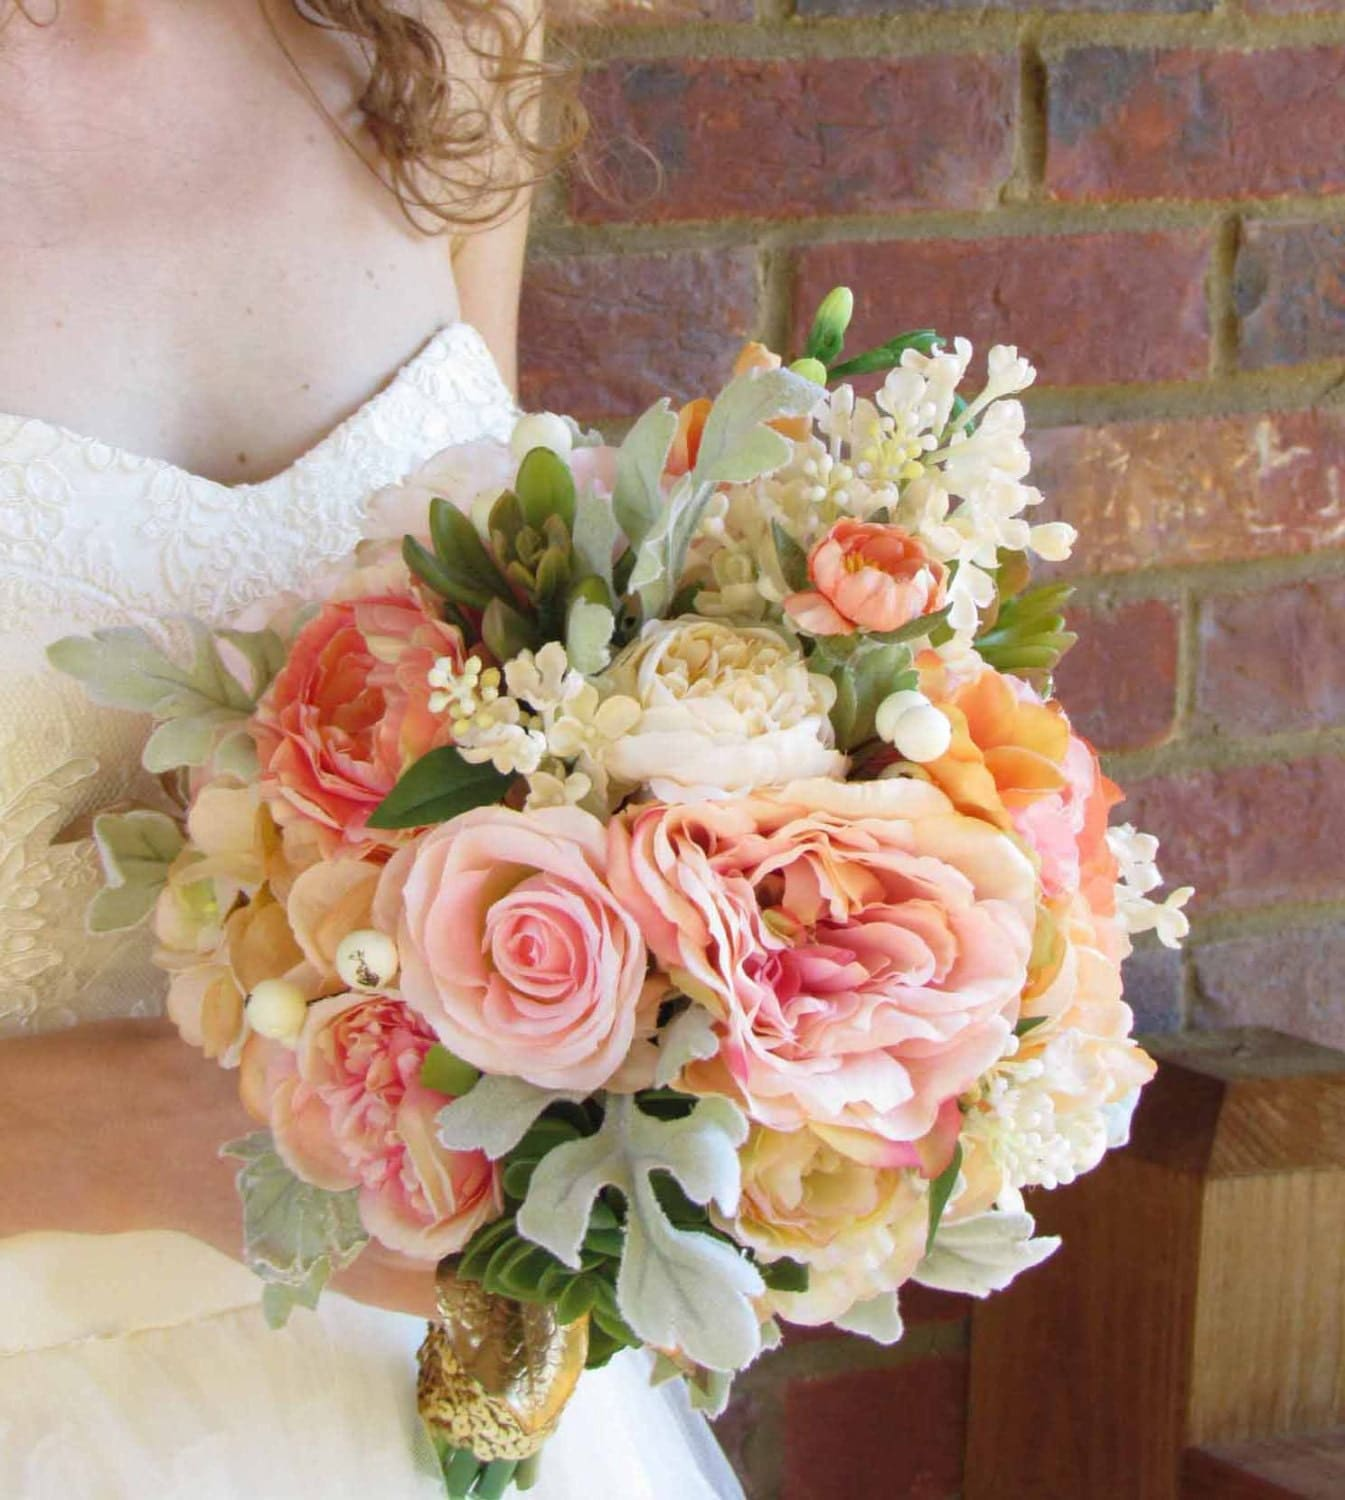 White Peach Pink Flower Wedding Altar: Pink Peach & Ivory Wedding Bouquet With Succulents Ready To